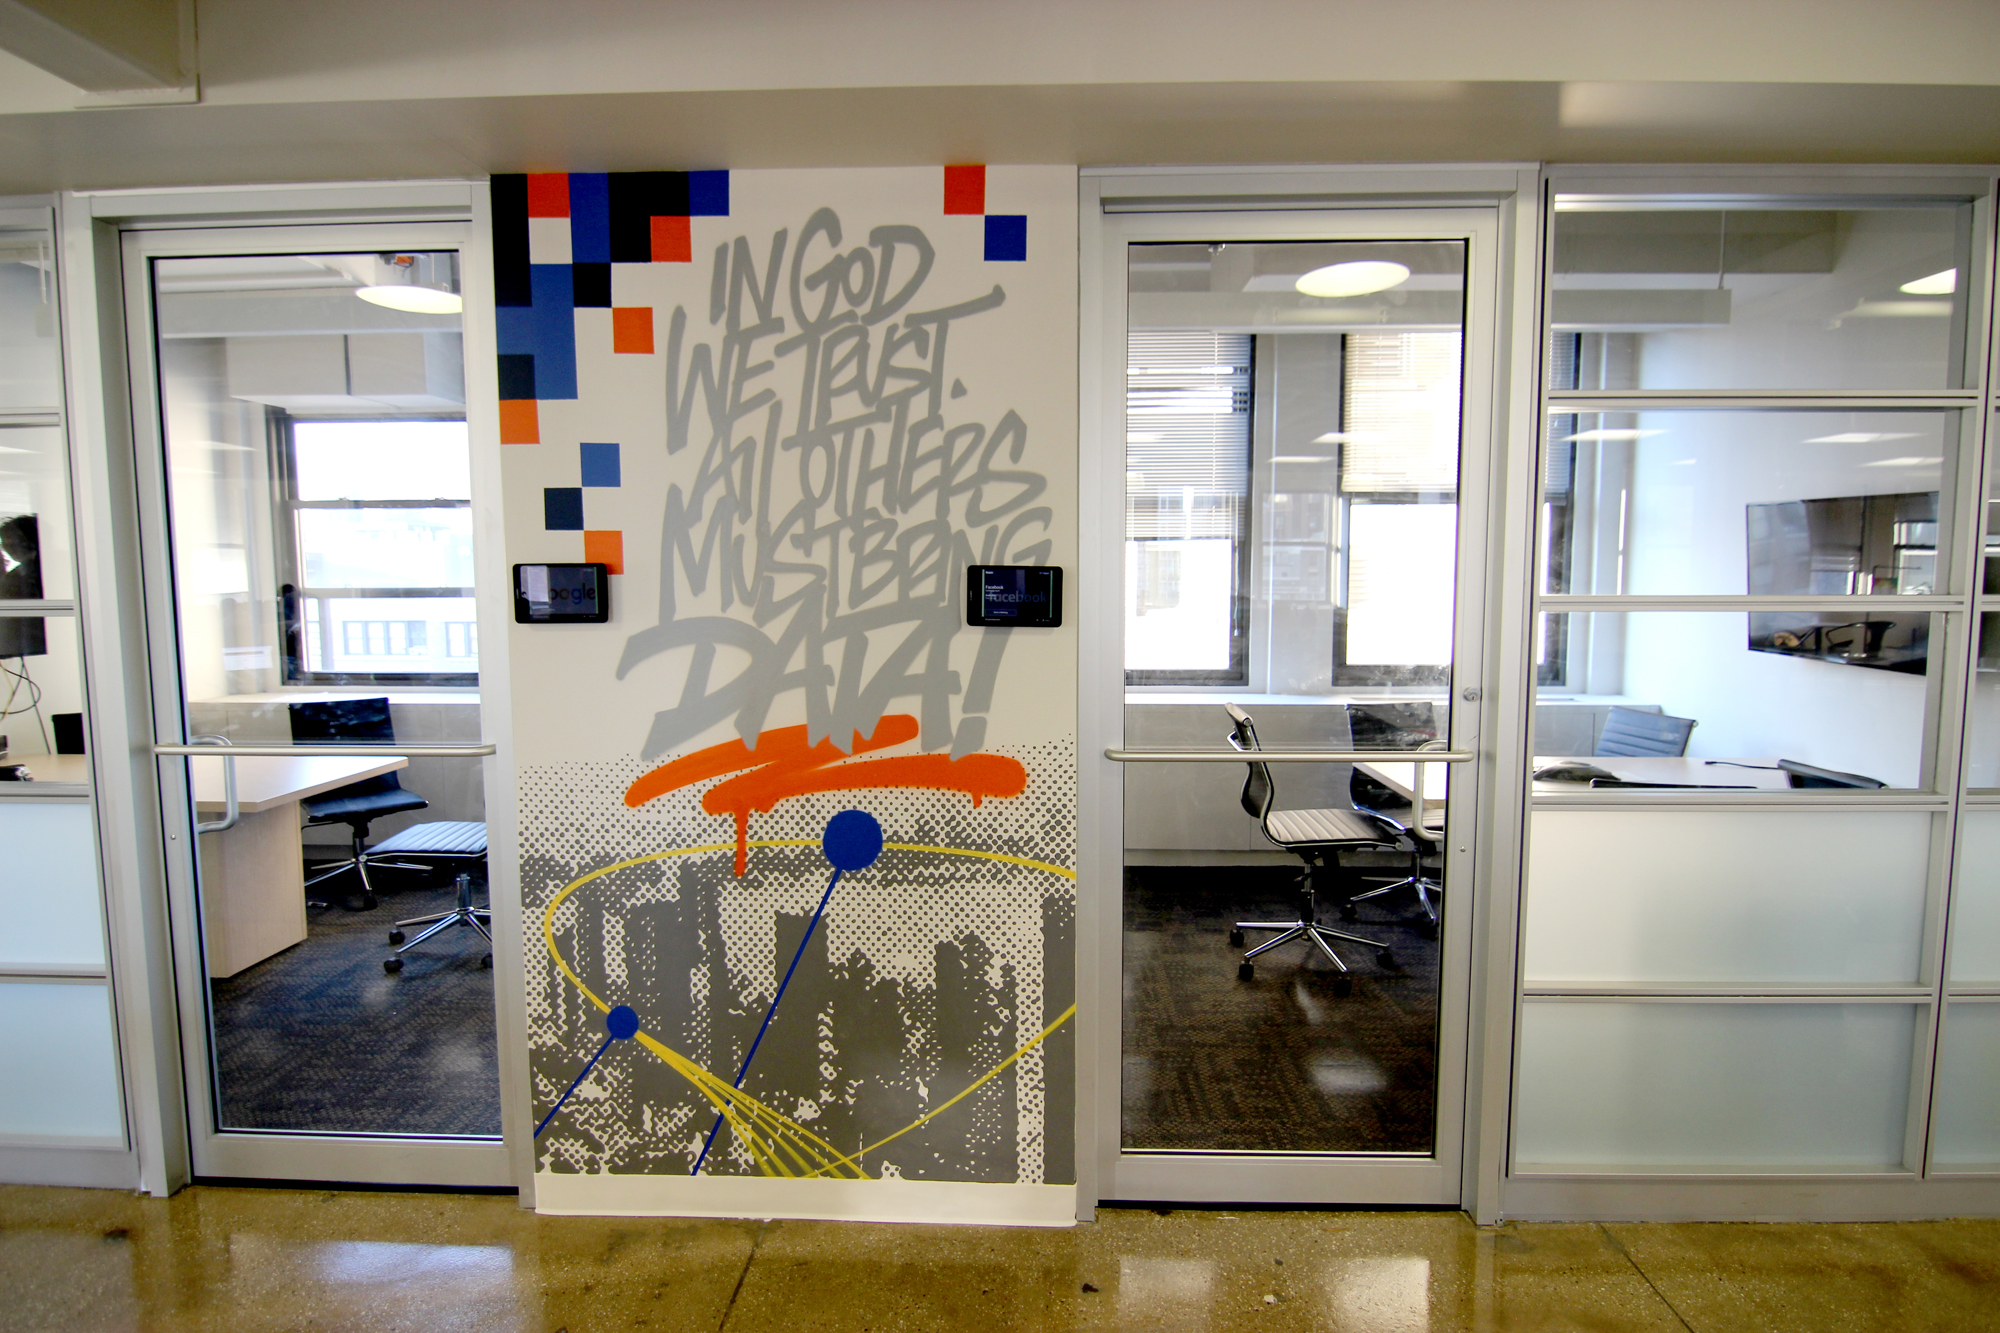 office mural, graffiti mural, street art mural, graffiti, street art, custom mural, hire a graffiti artist